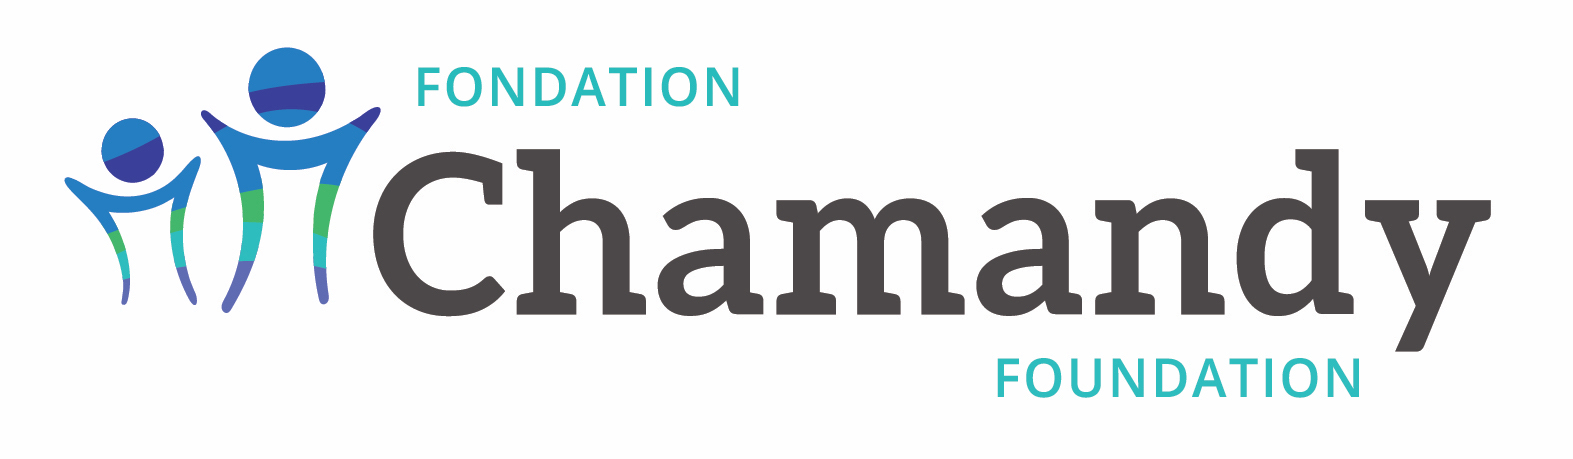 Chamandy Fondation